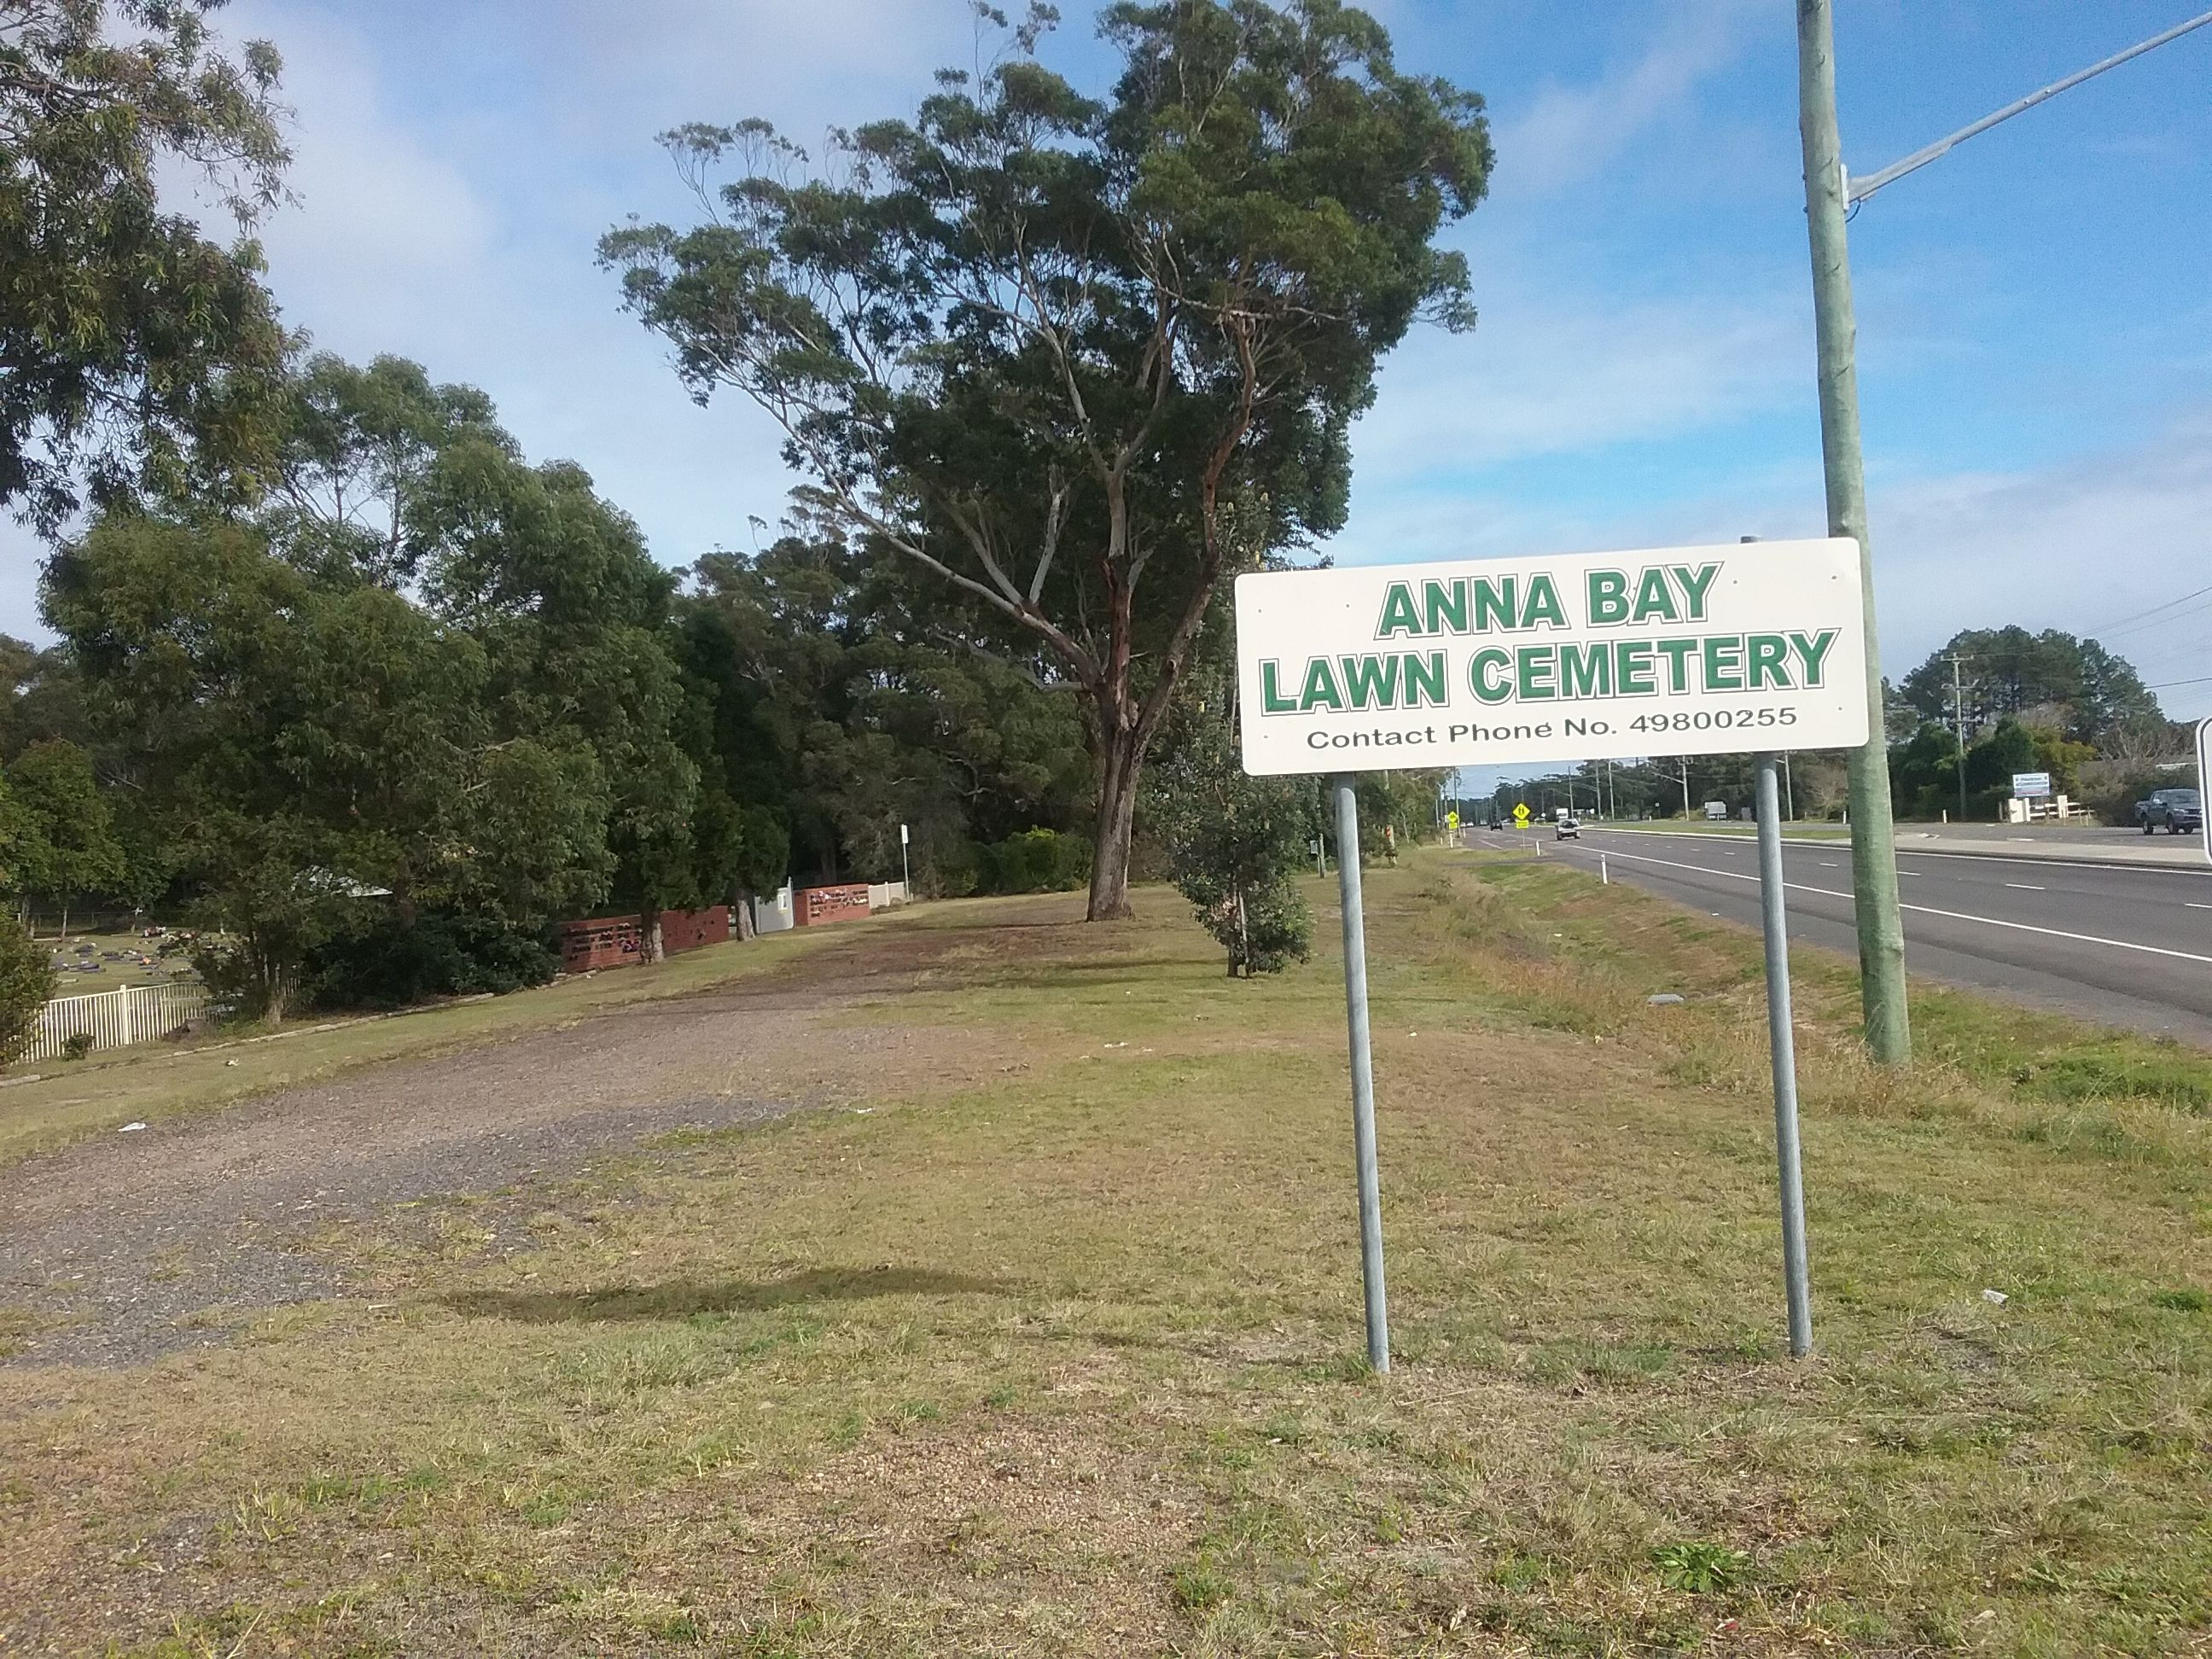 Anna Bay Lawn Cemetery in Anna Bay, New South Wales - Find A